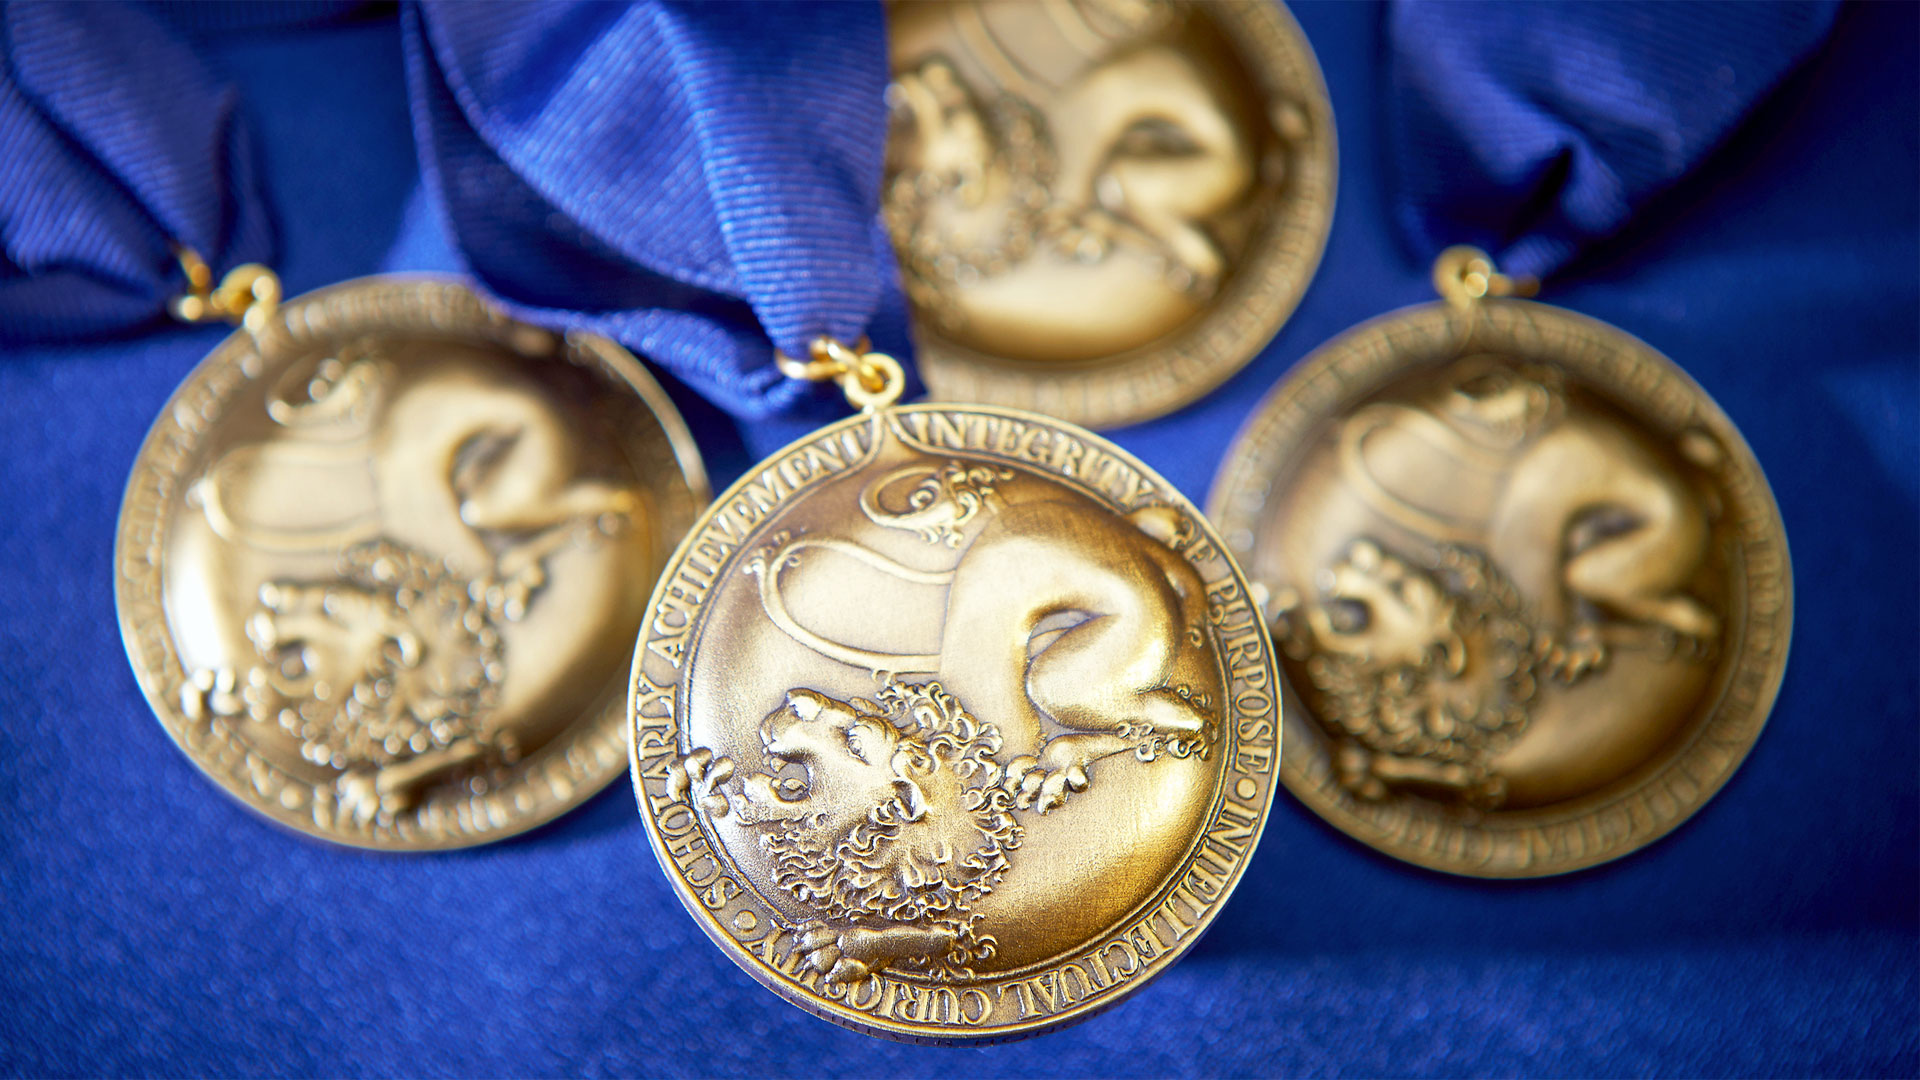 The Schreyer Honors College Scholars Medal